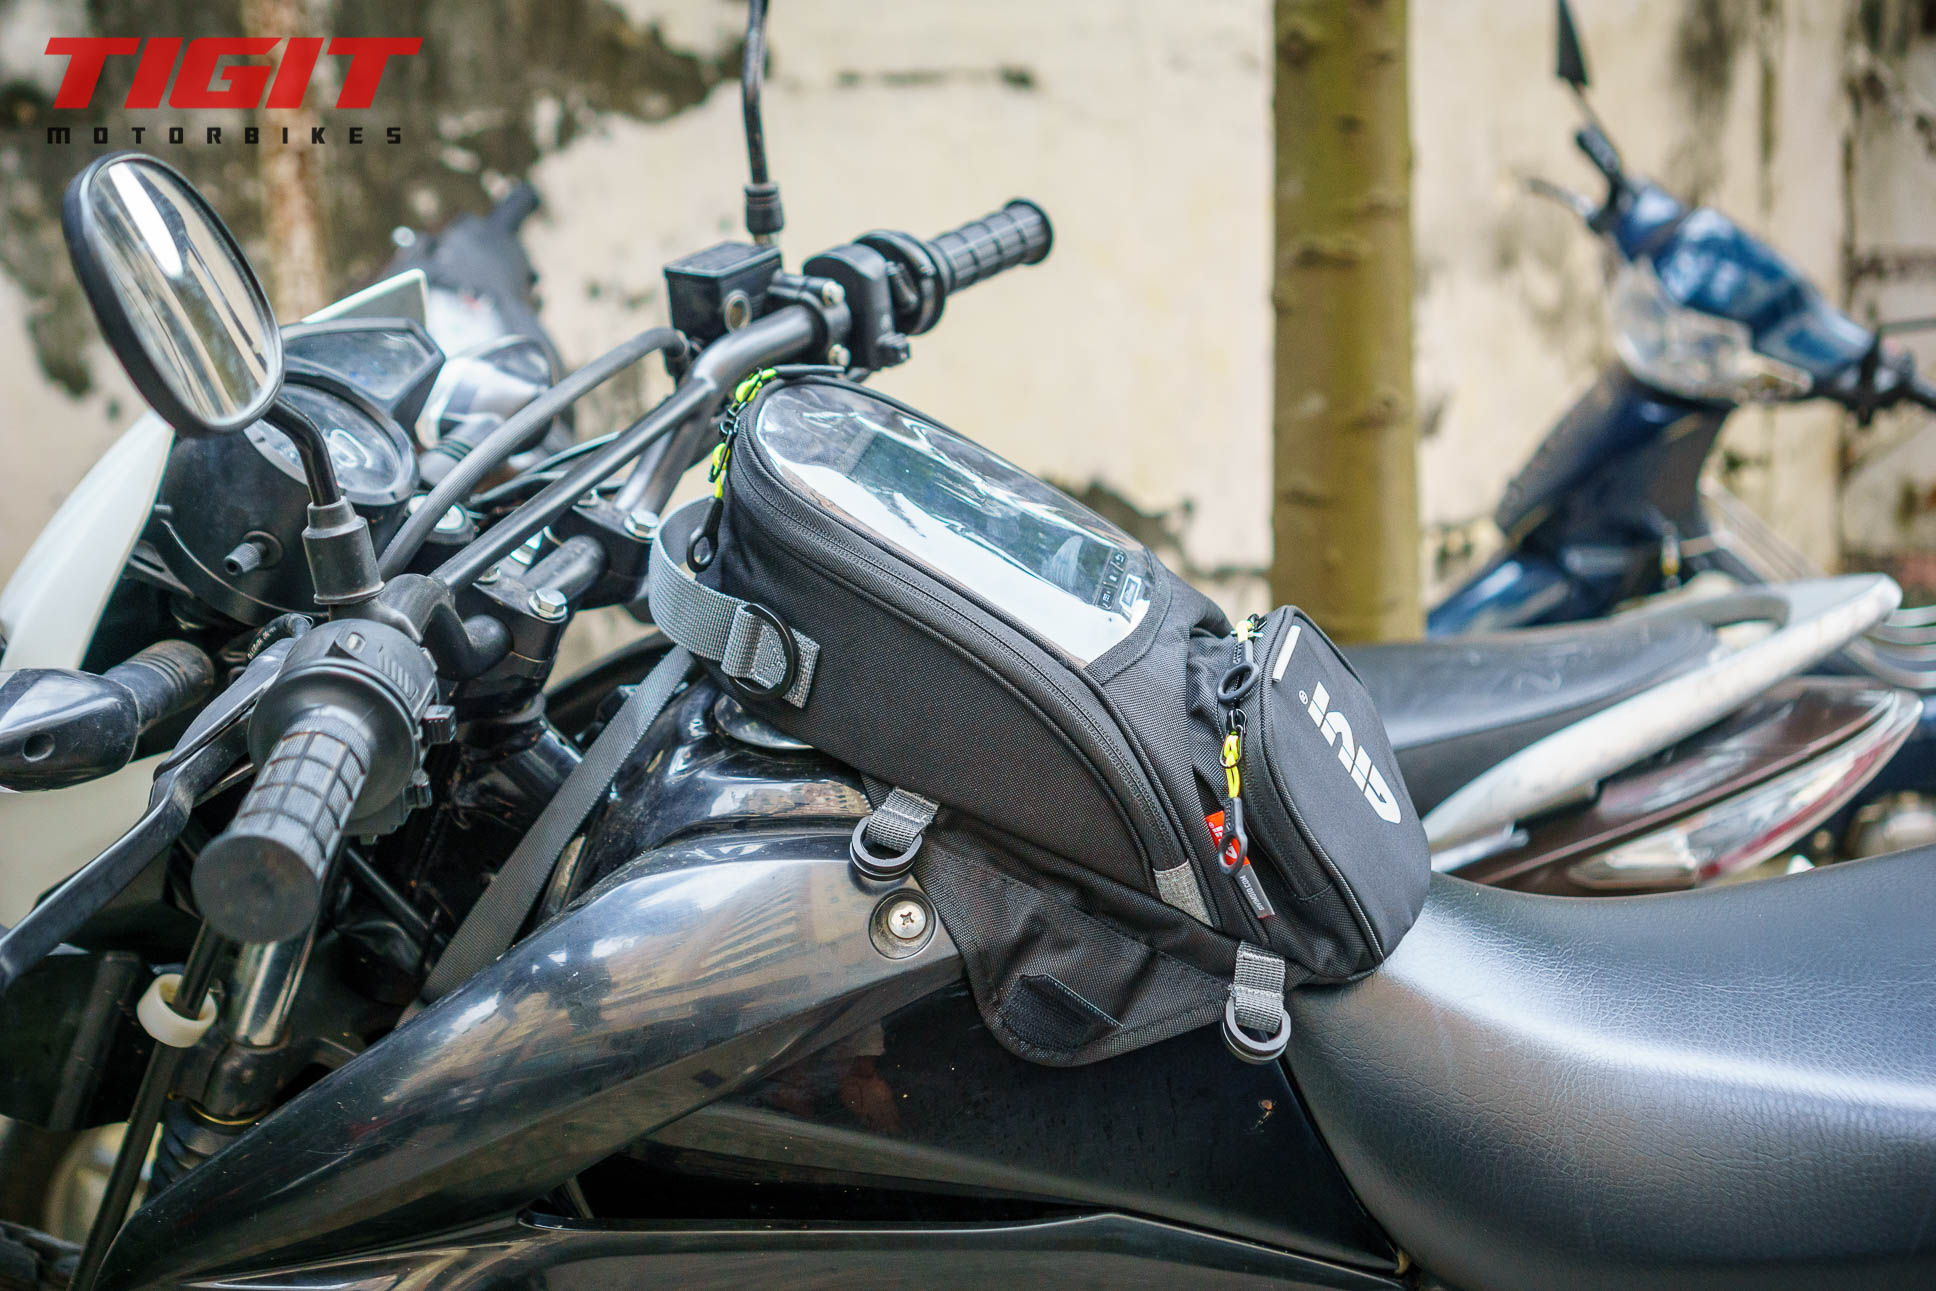 gps for motorcycles best one